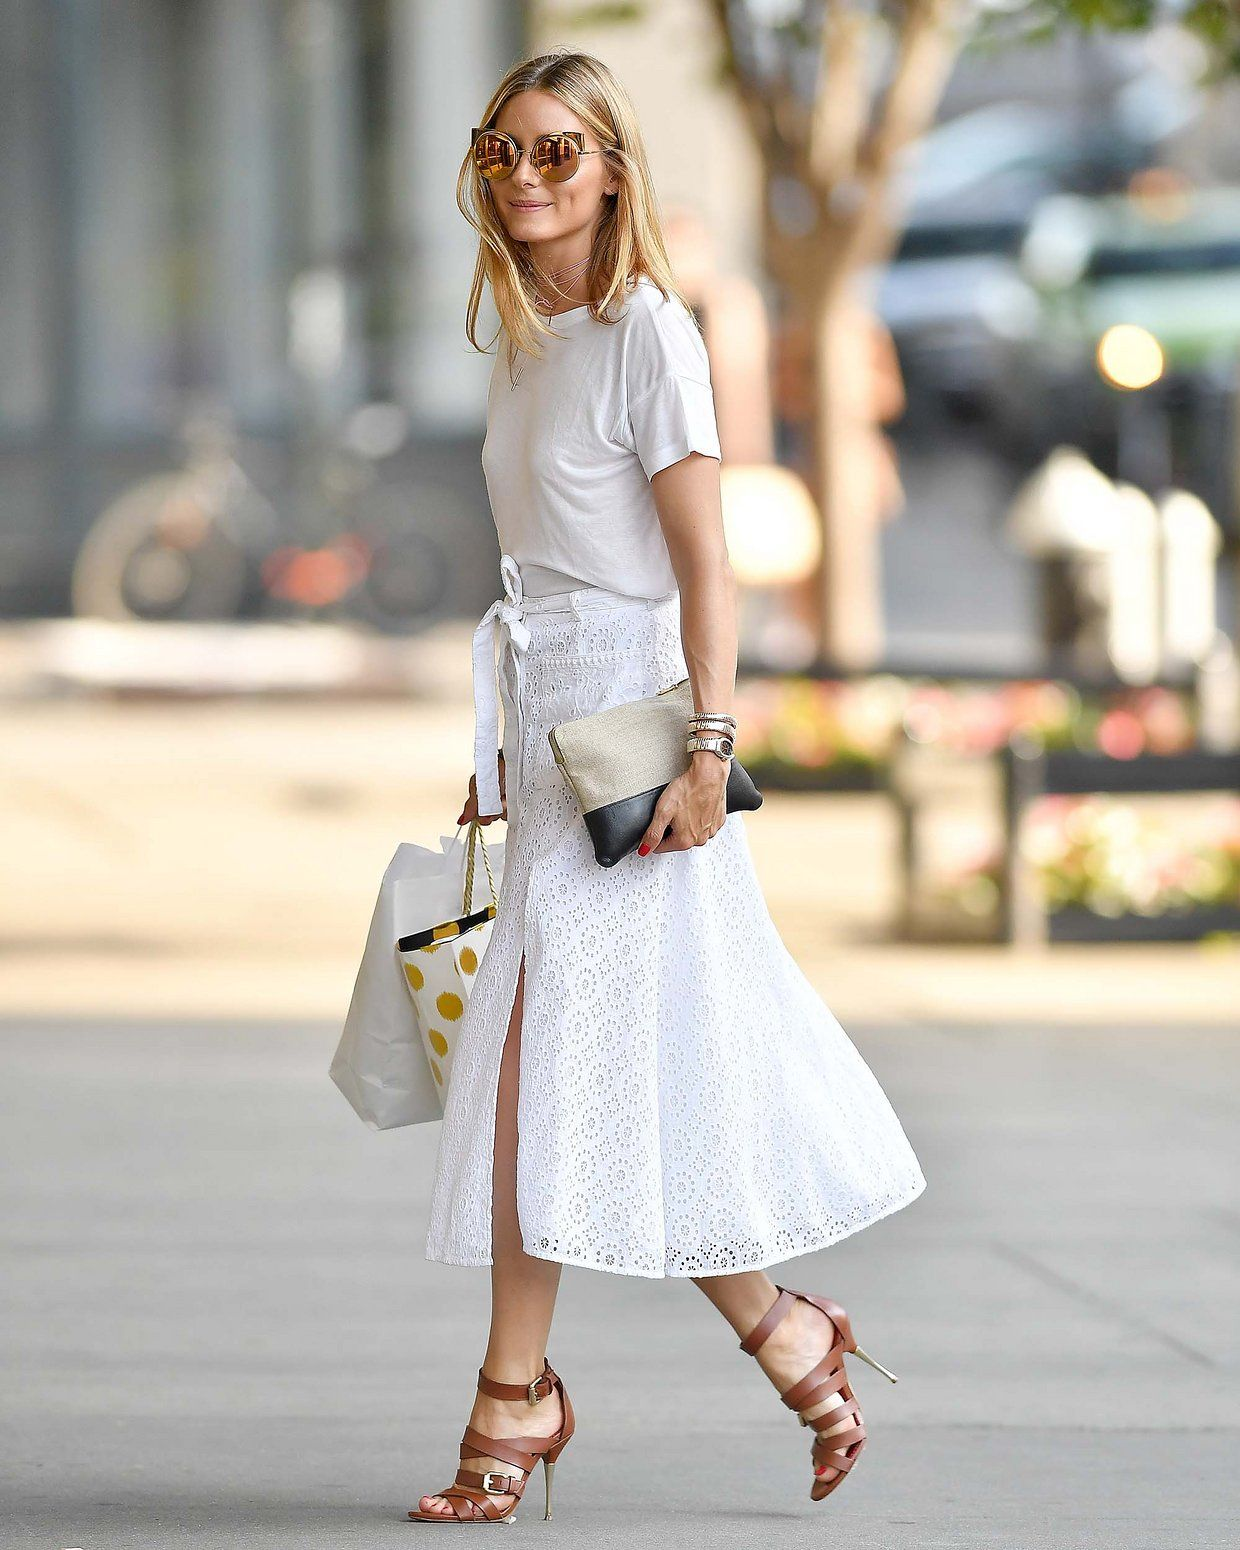 The Olivia Palermo Lookbook Olivia Palermo Spotted In New York City Style Inspiration